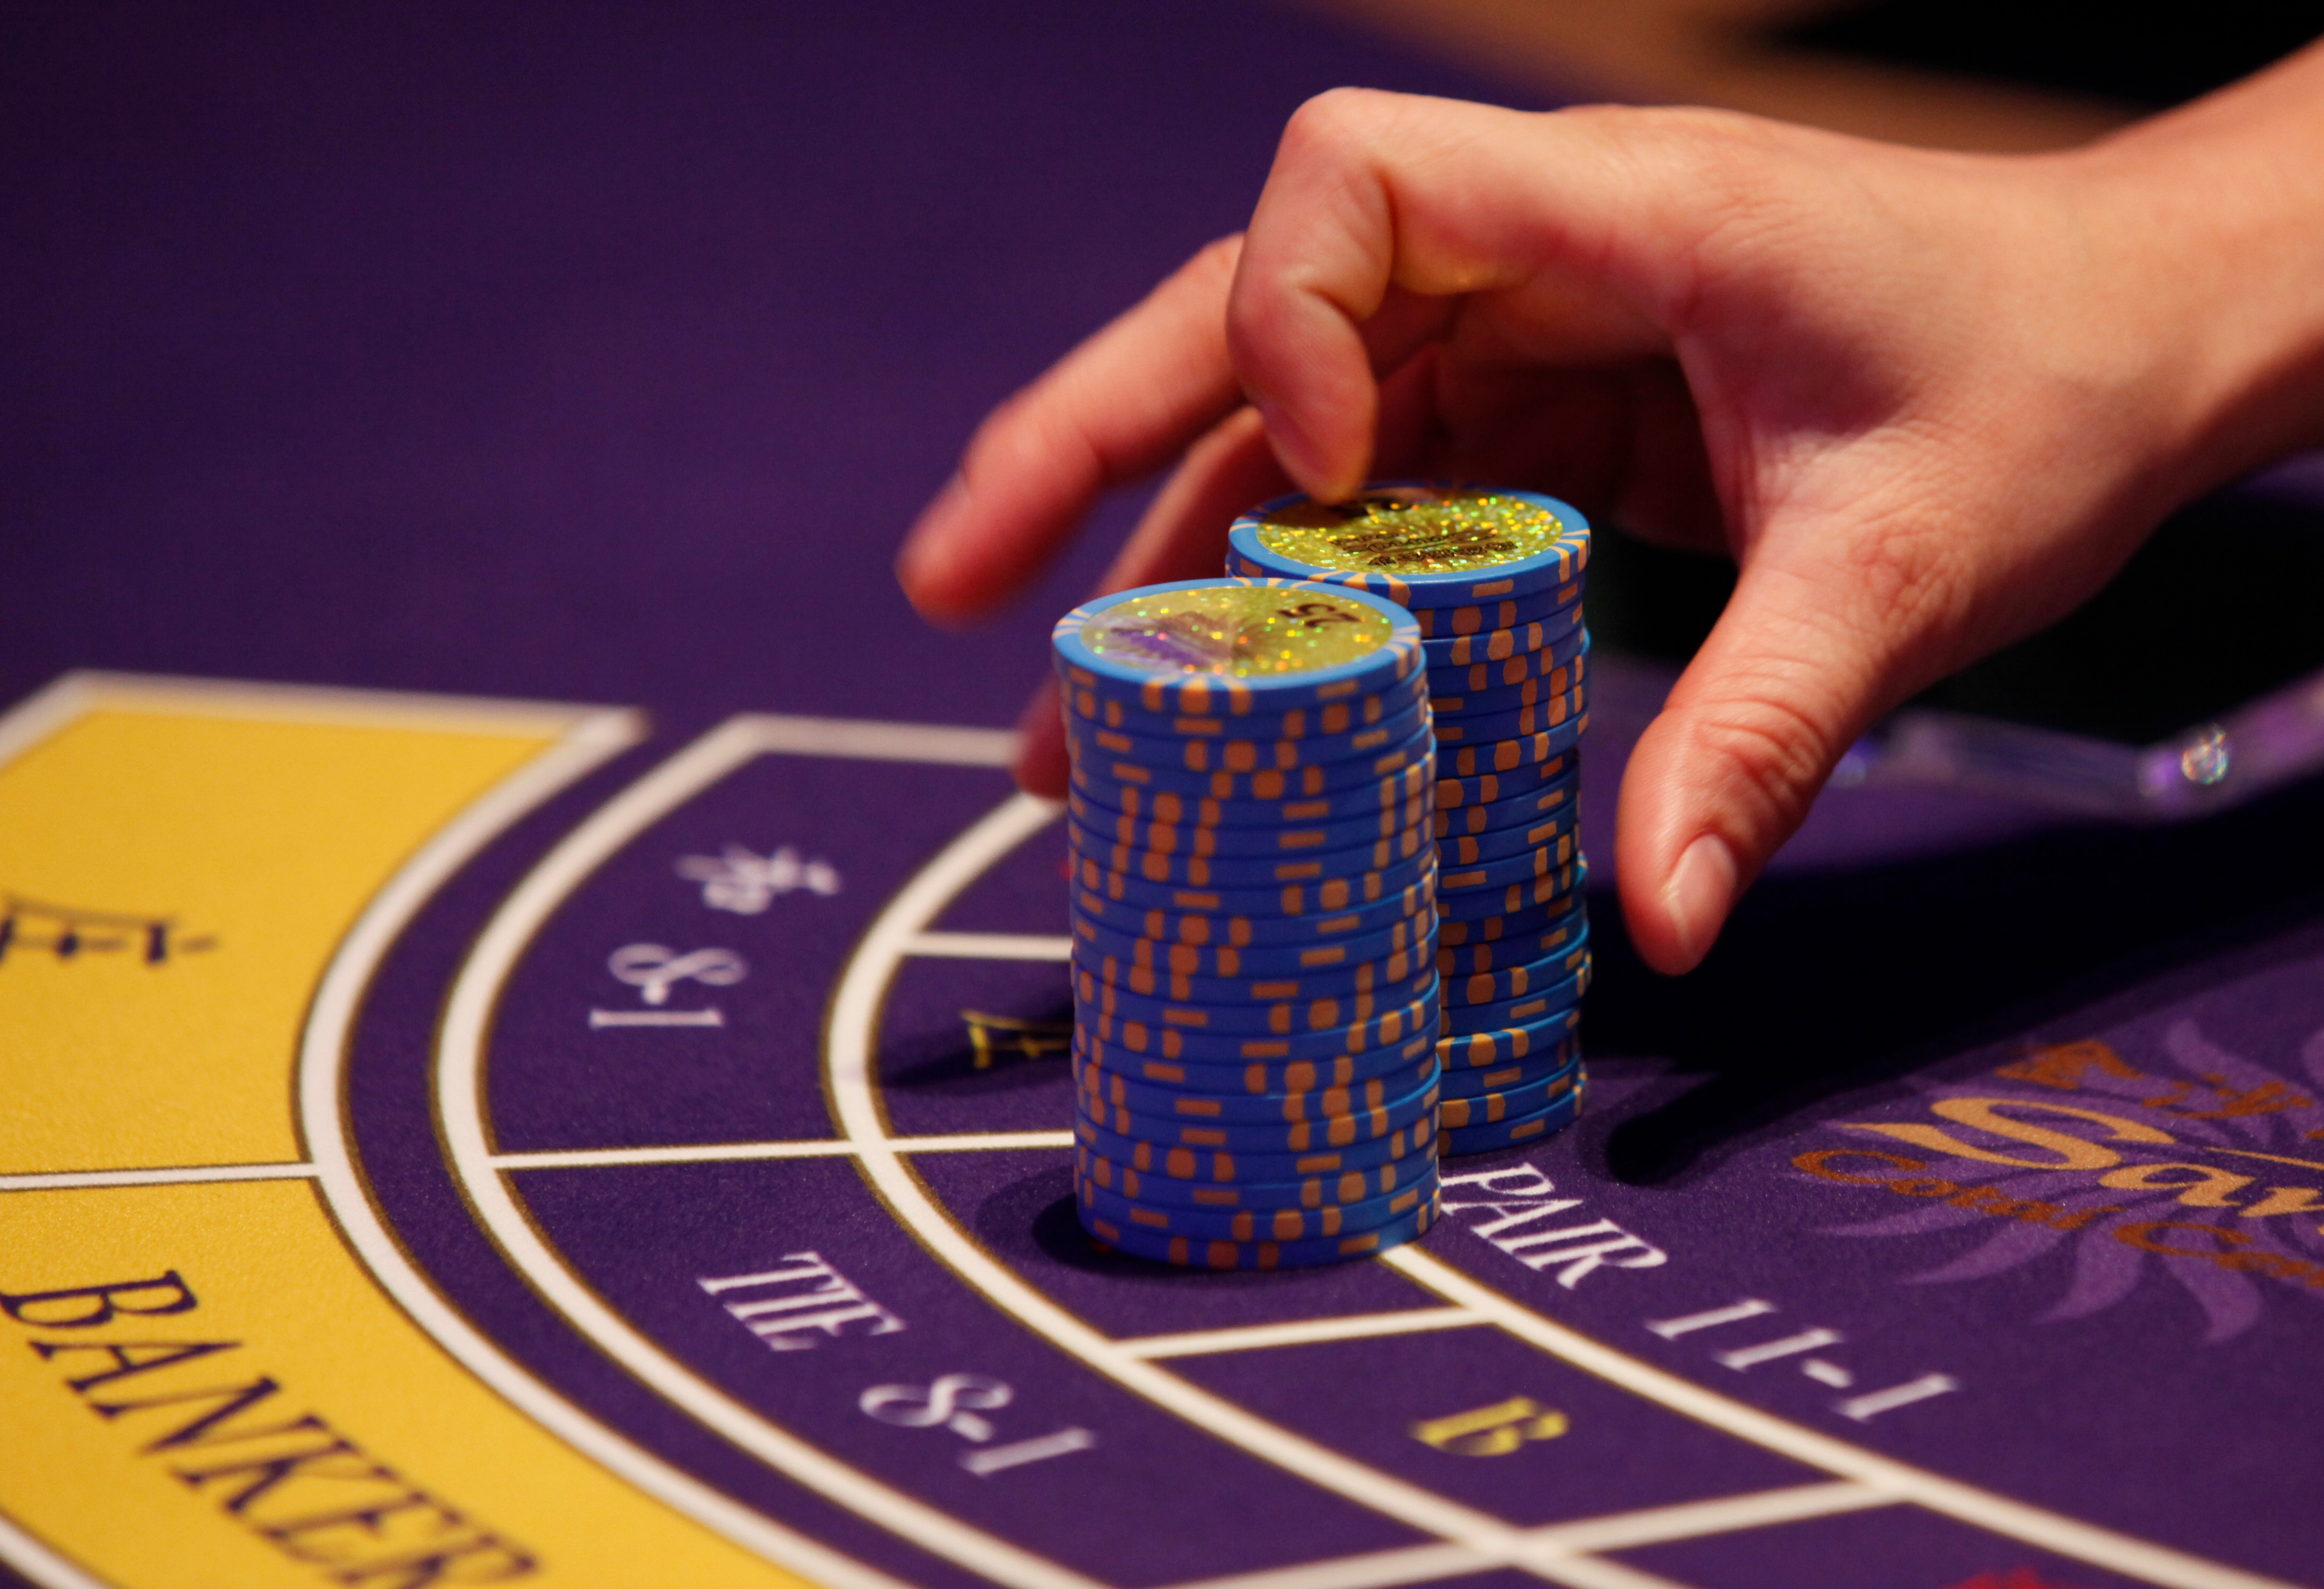 Asia Gambling Expansion Not Likely to Offset Macau | Voice of America - English